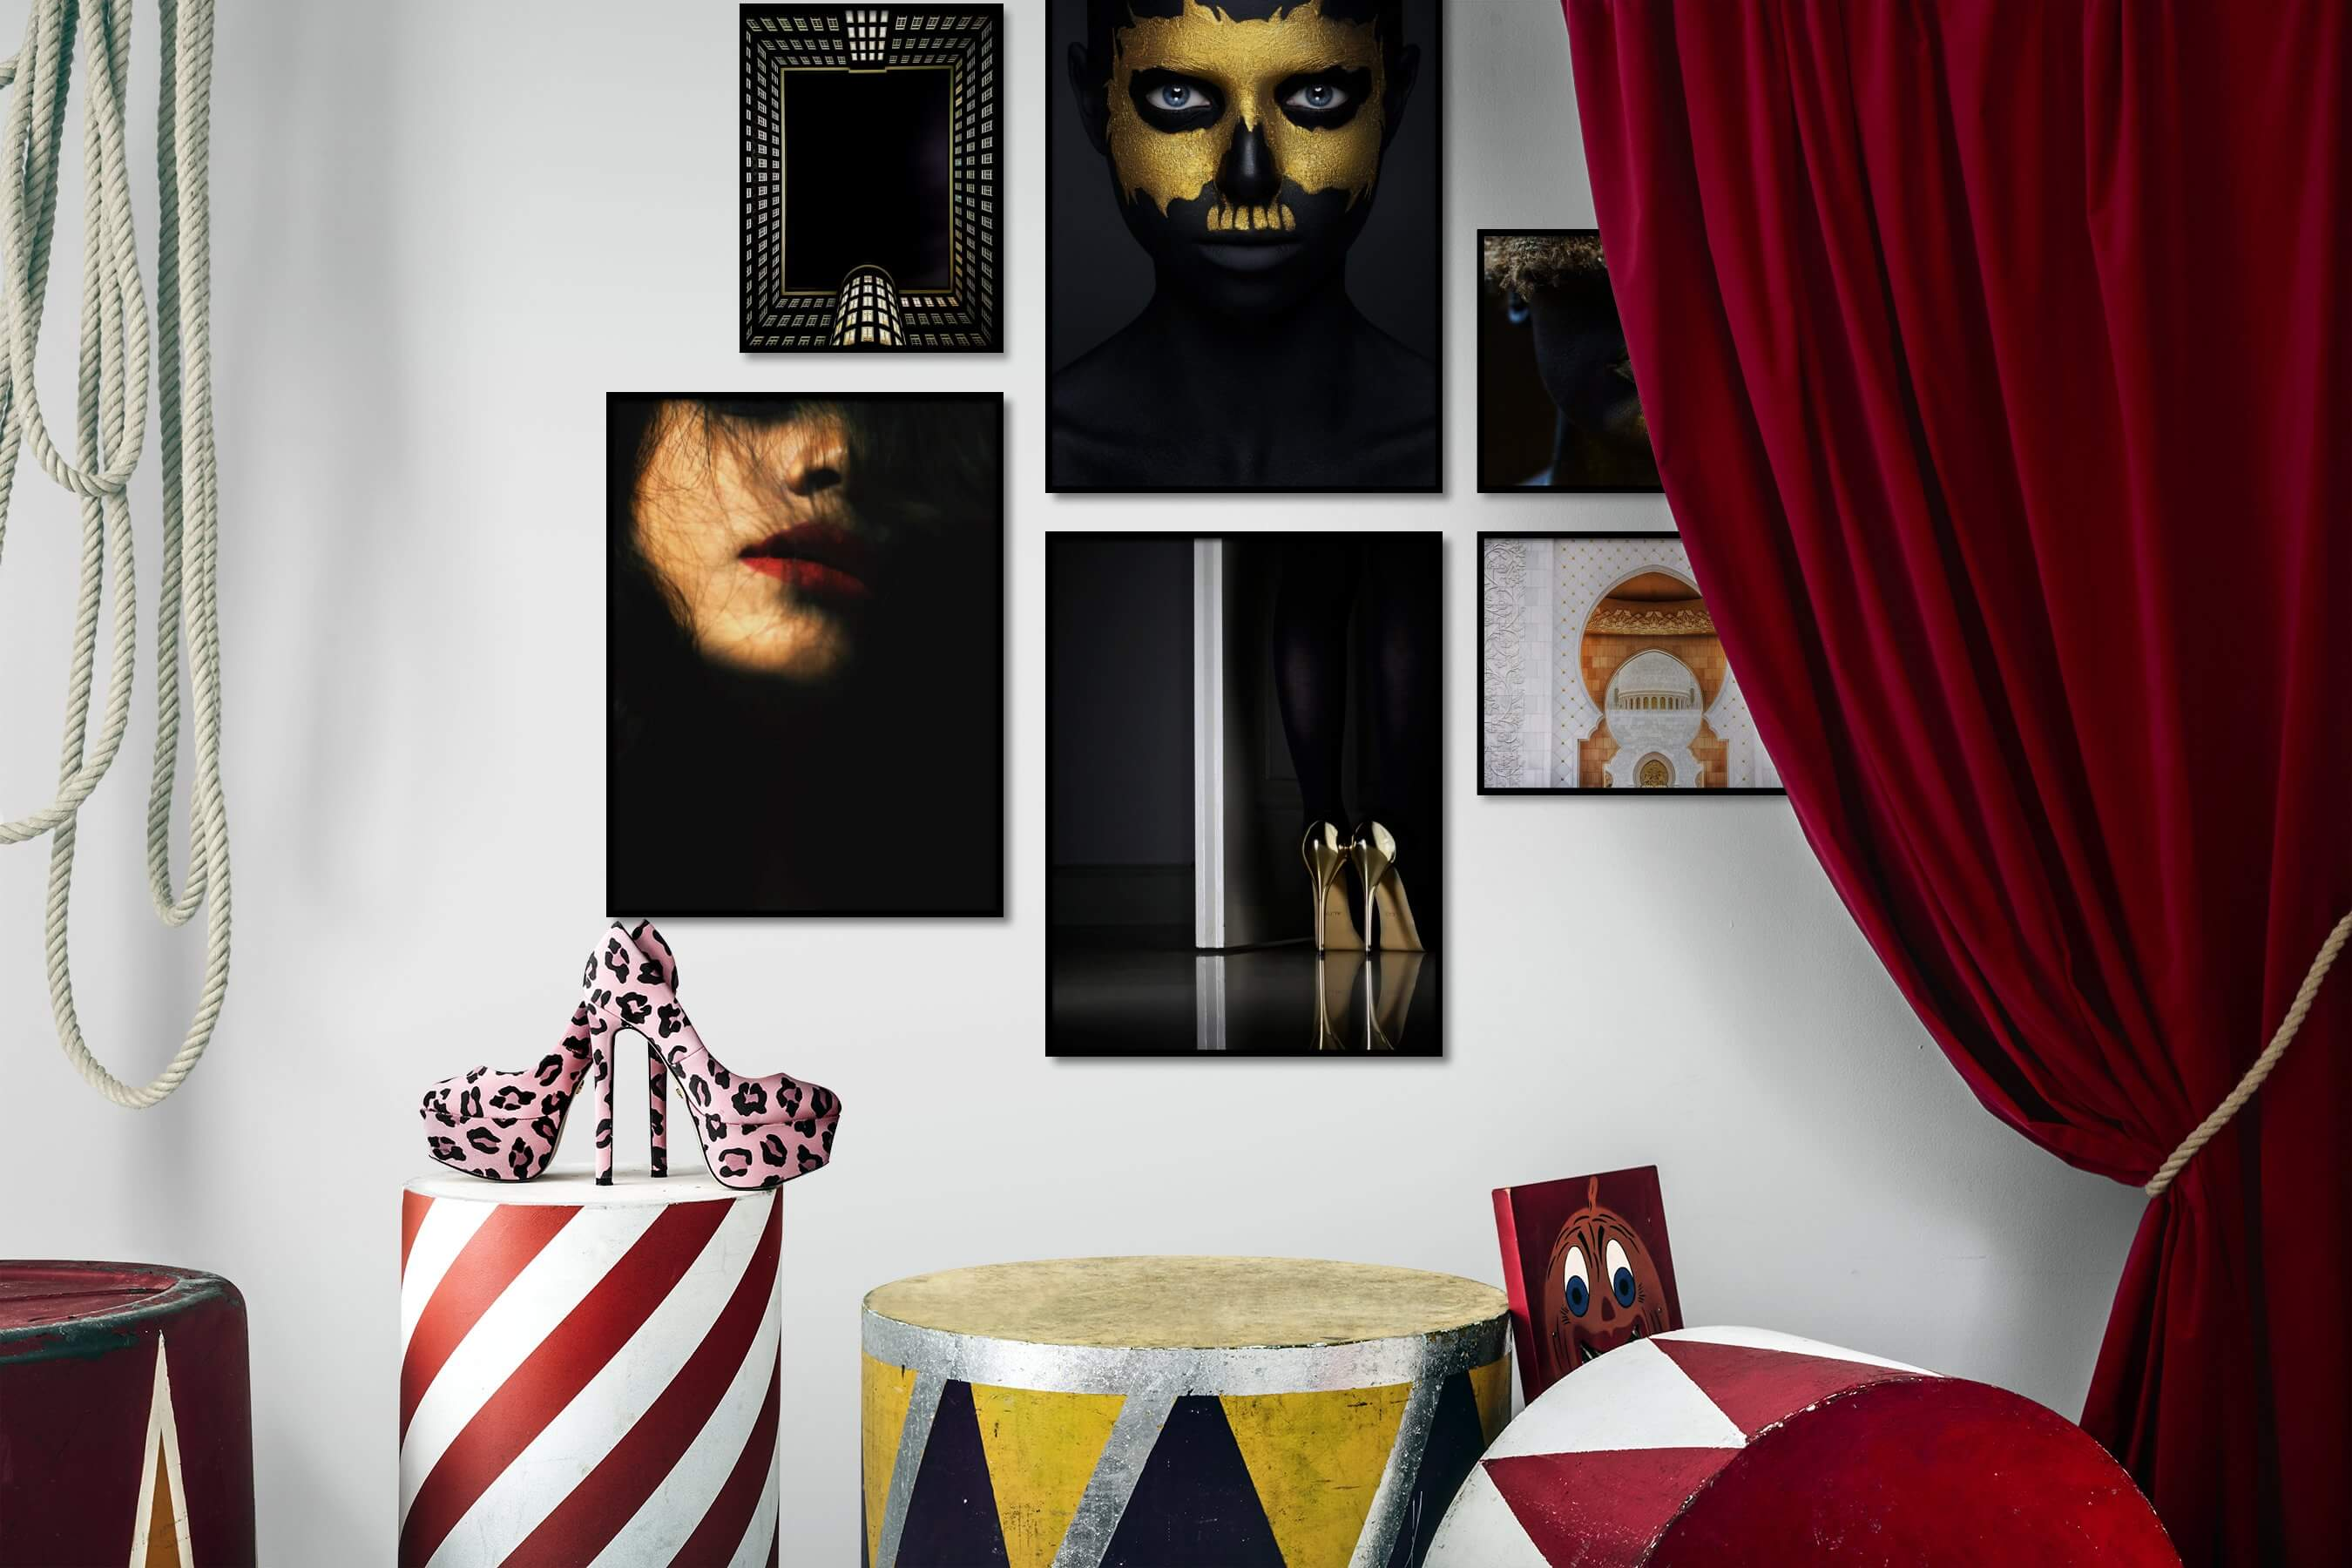 Gallery wall idea with six framed pictures arranged on a wall depicting Dark Tones, For the Moderate, Artsy, Colorful, Fashion & Beauty, and For the Minimalist